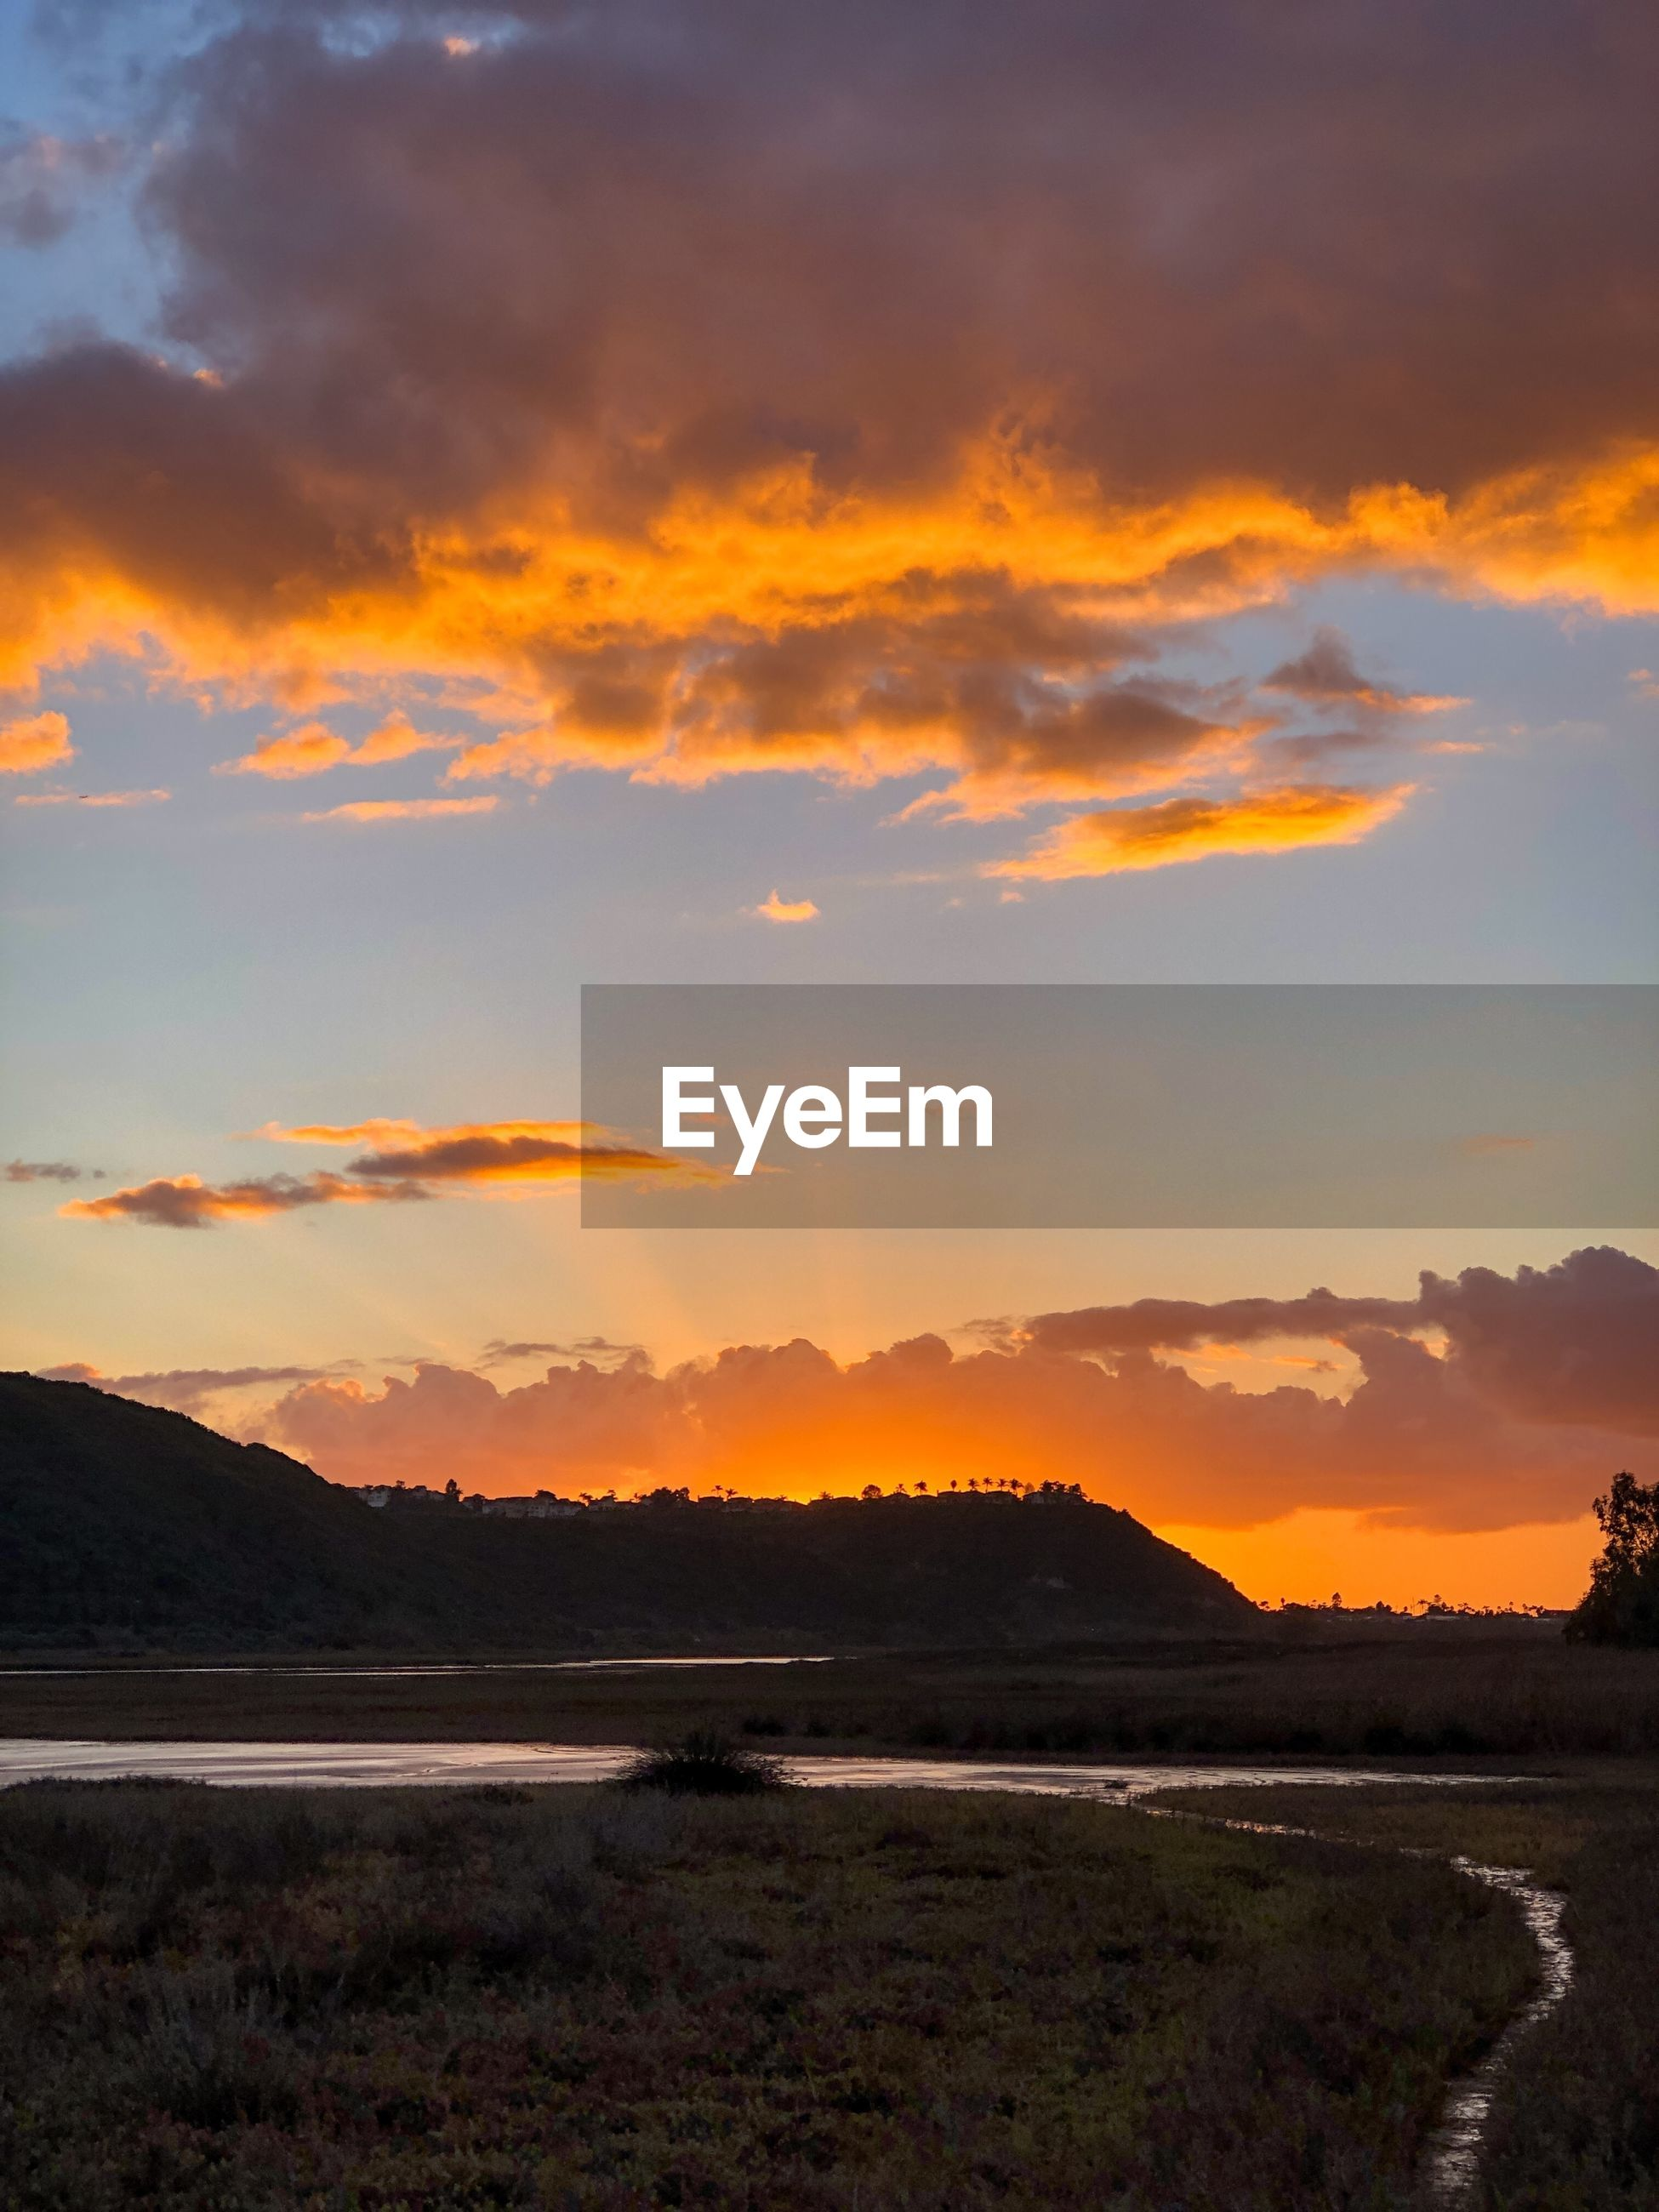 SCENIC VIEW OF SUNSET OVER LAND